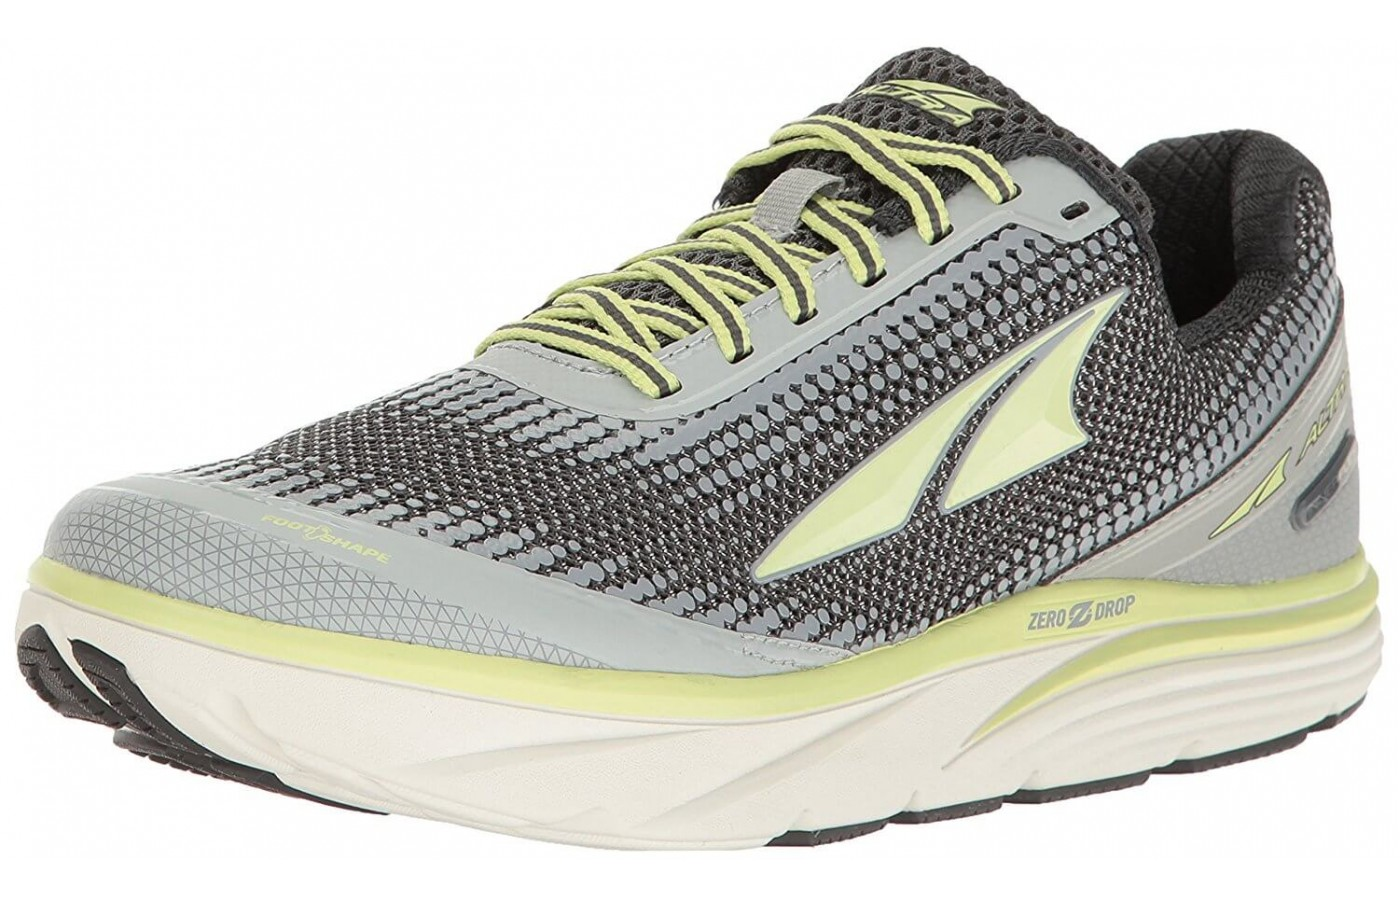 The Altra Torin 3.0 has an A-Bound midsole